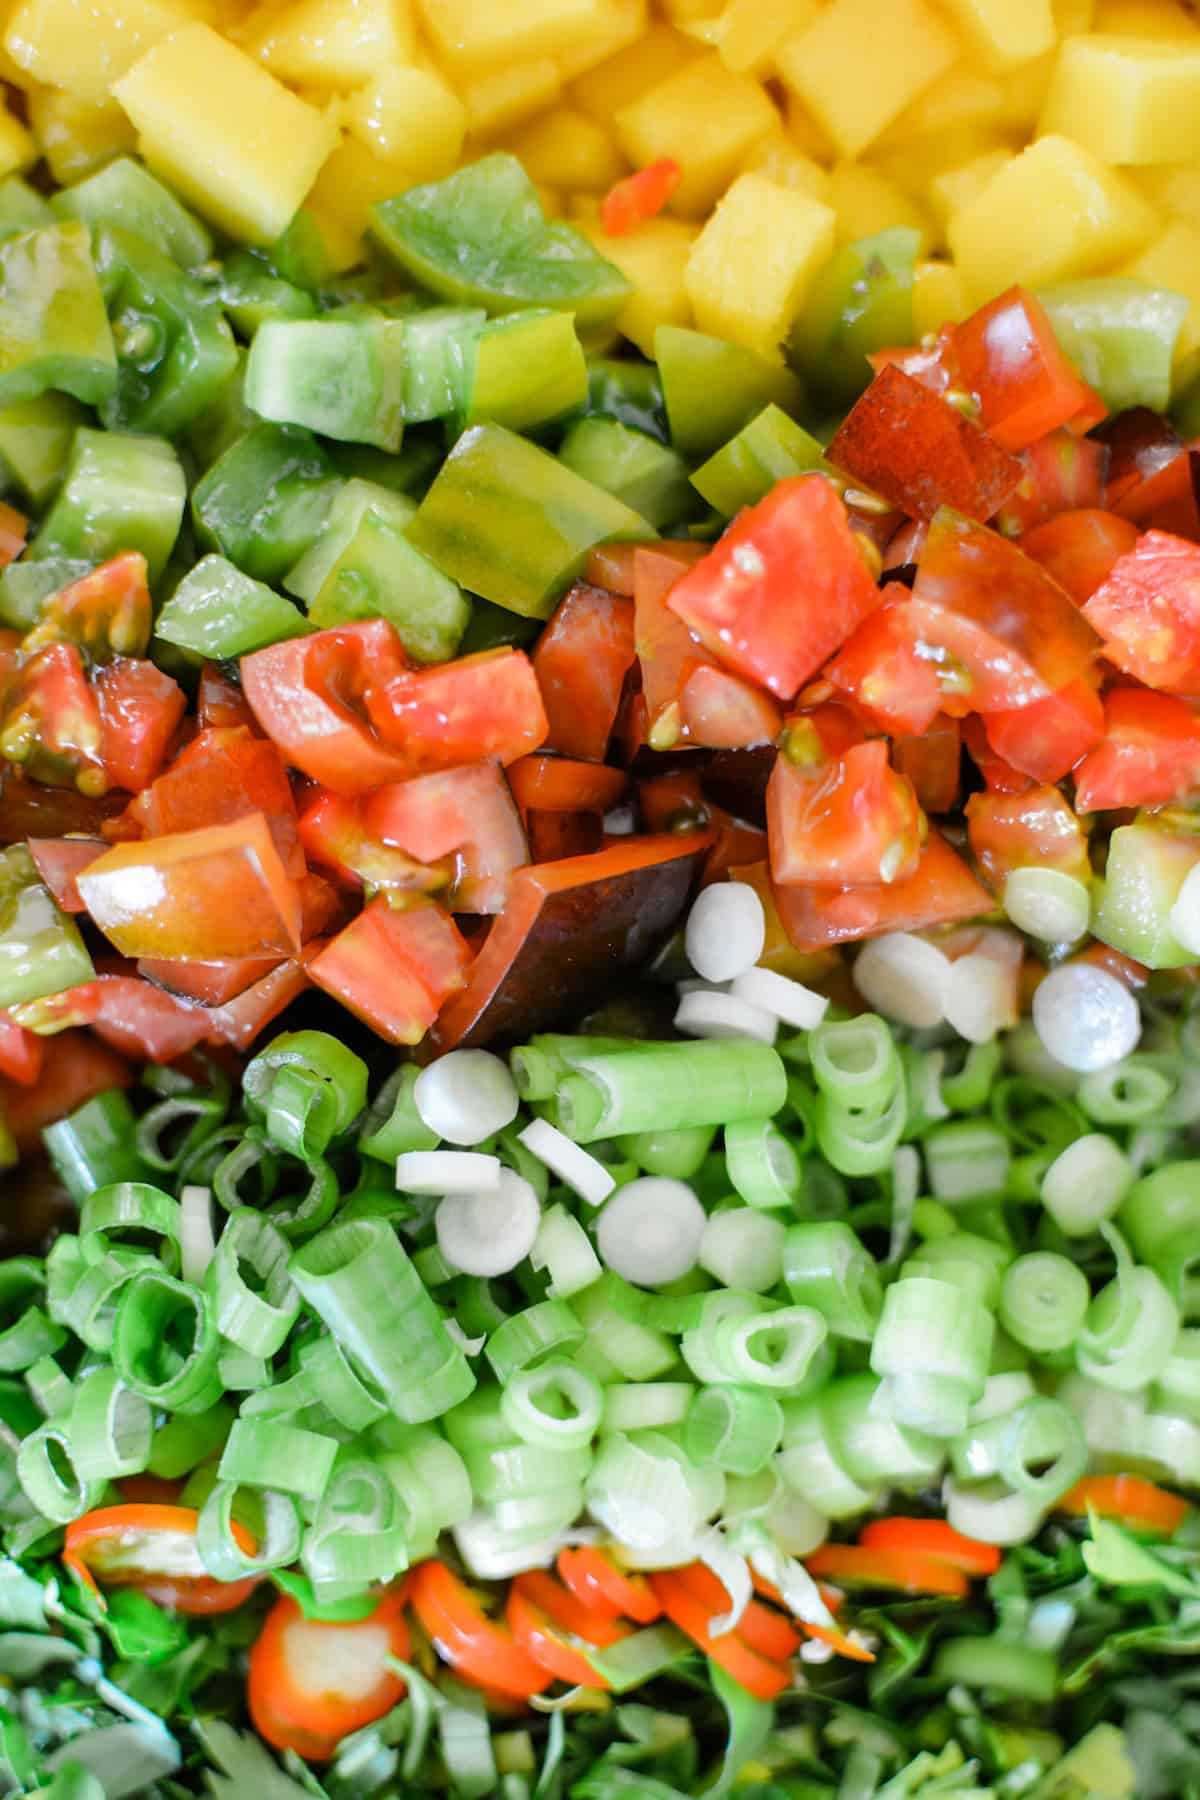 Diced mango, tomatoes, scallions, thinly sliced red Serrano peppers, and chopped parsley all lined up in a row.